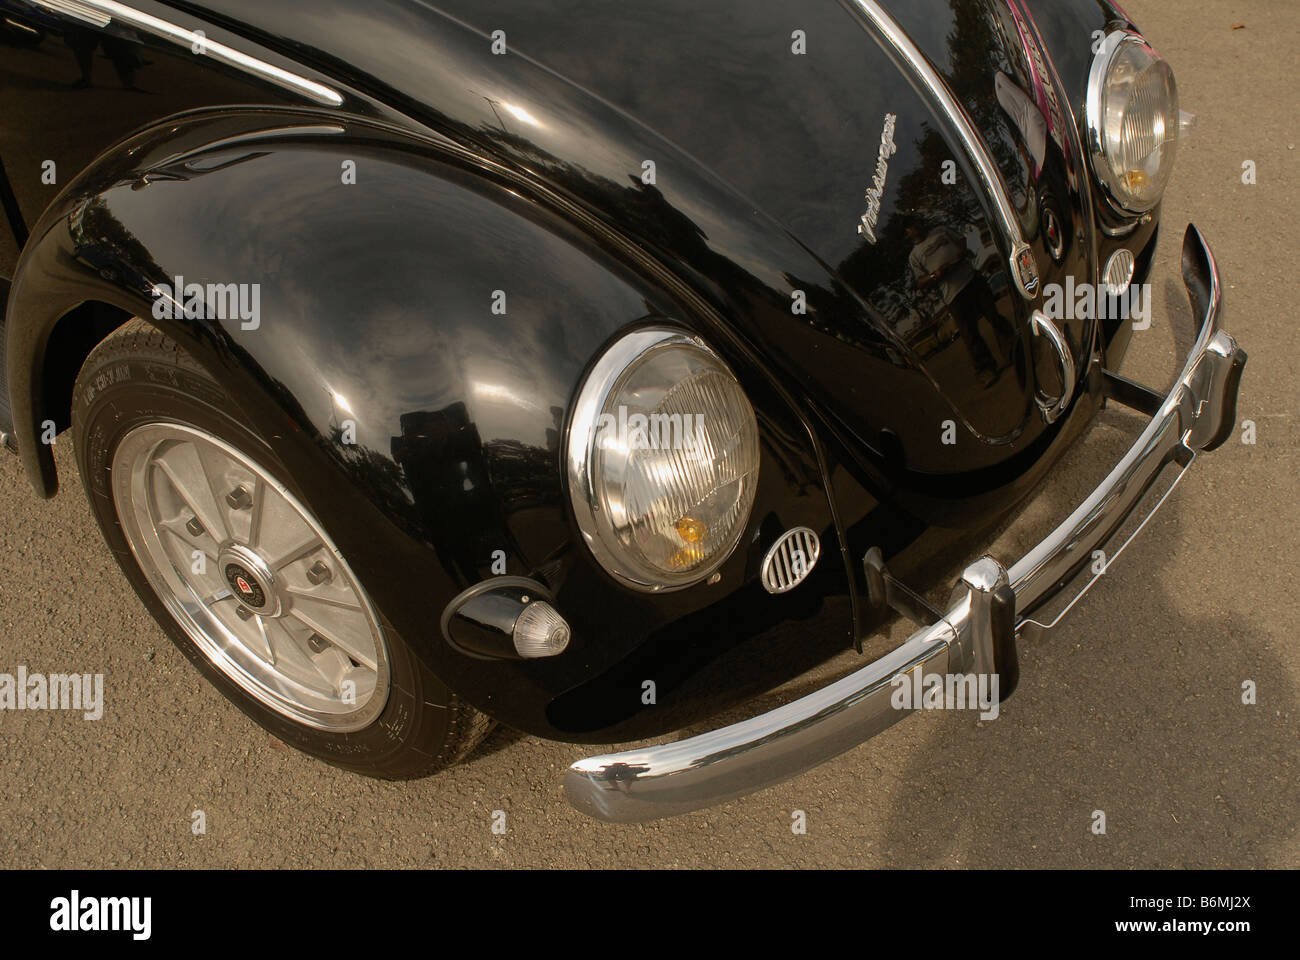 Front fender detail from classic 1954 oval window vwbeetle - Stock Image